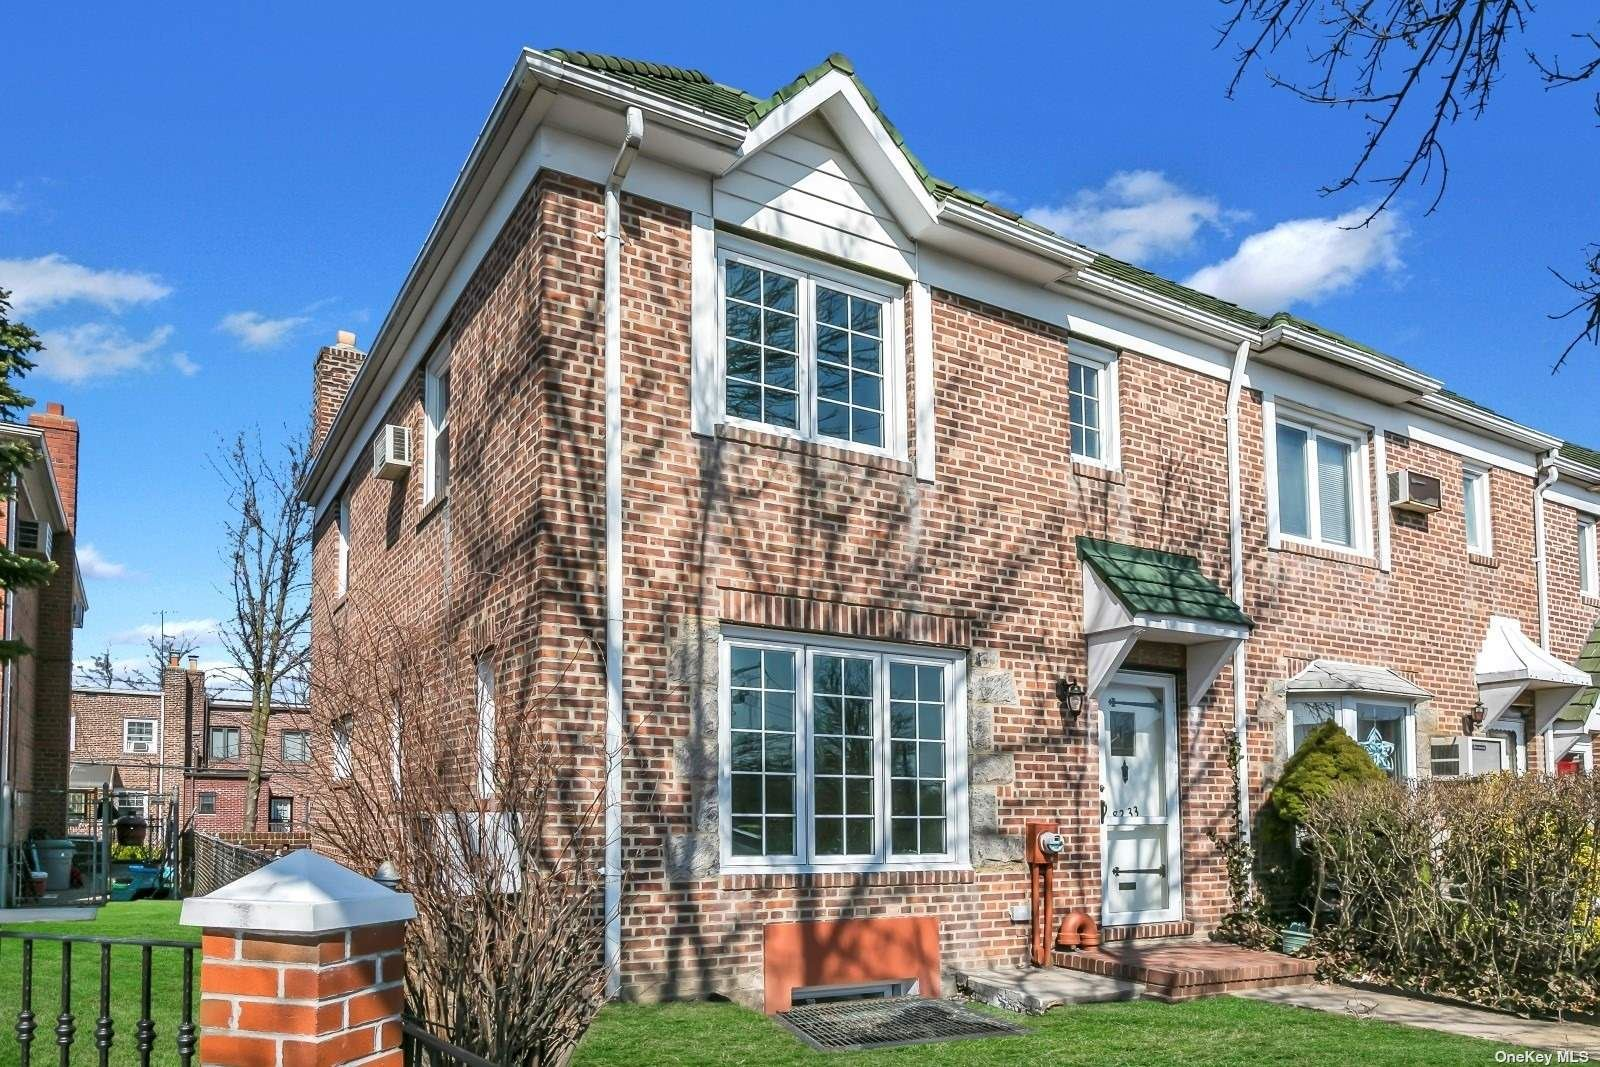 82-33 61st Road, Middle Village, NY 11379 - MLS#: 3295430